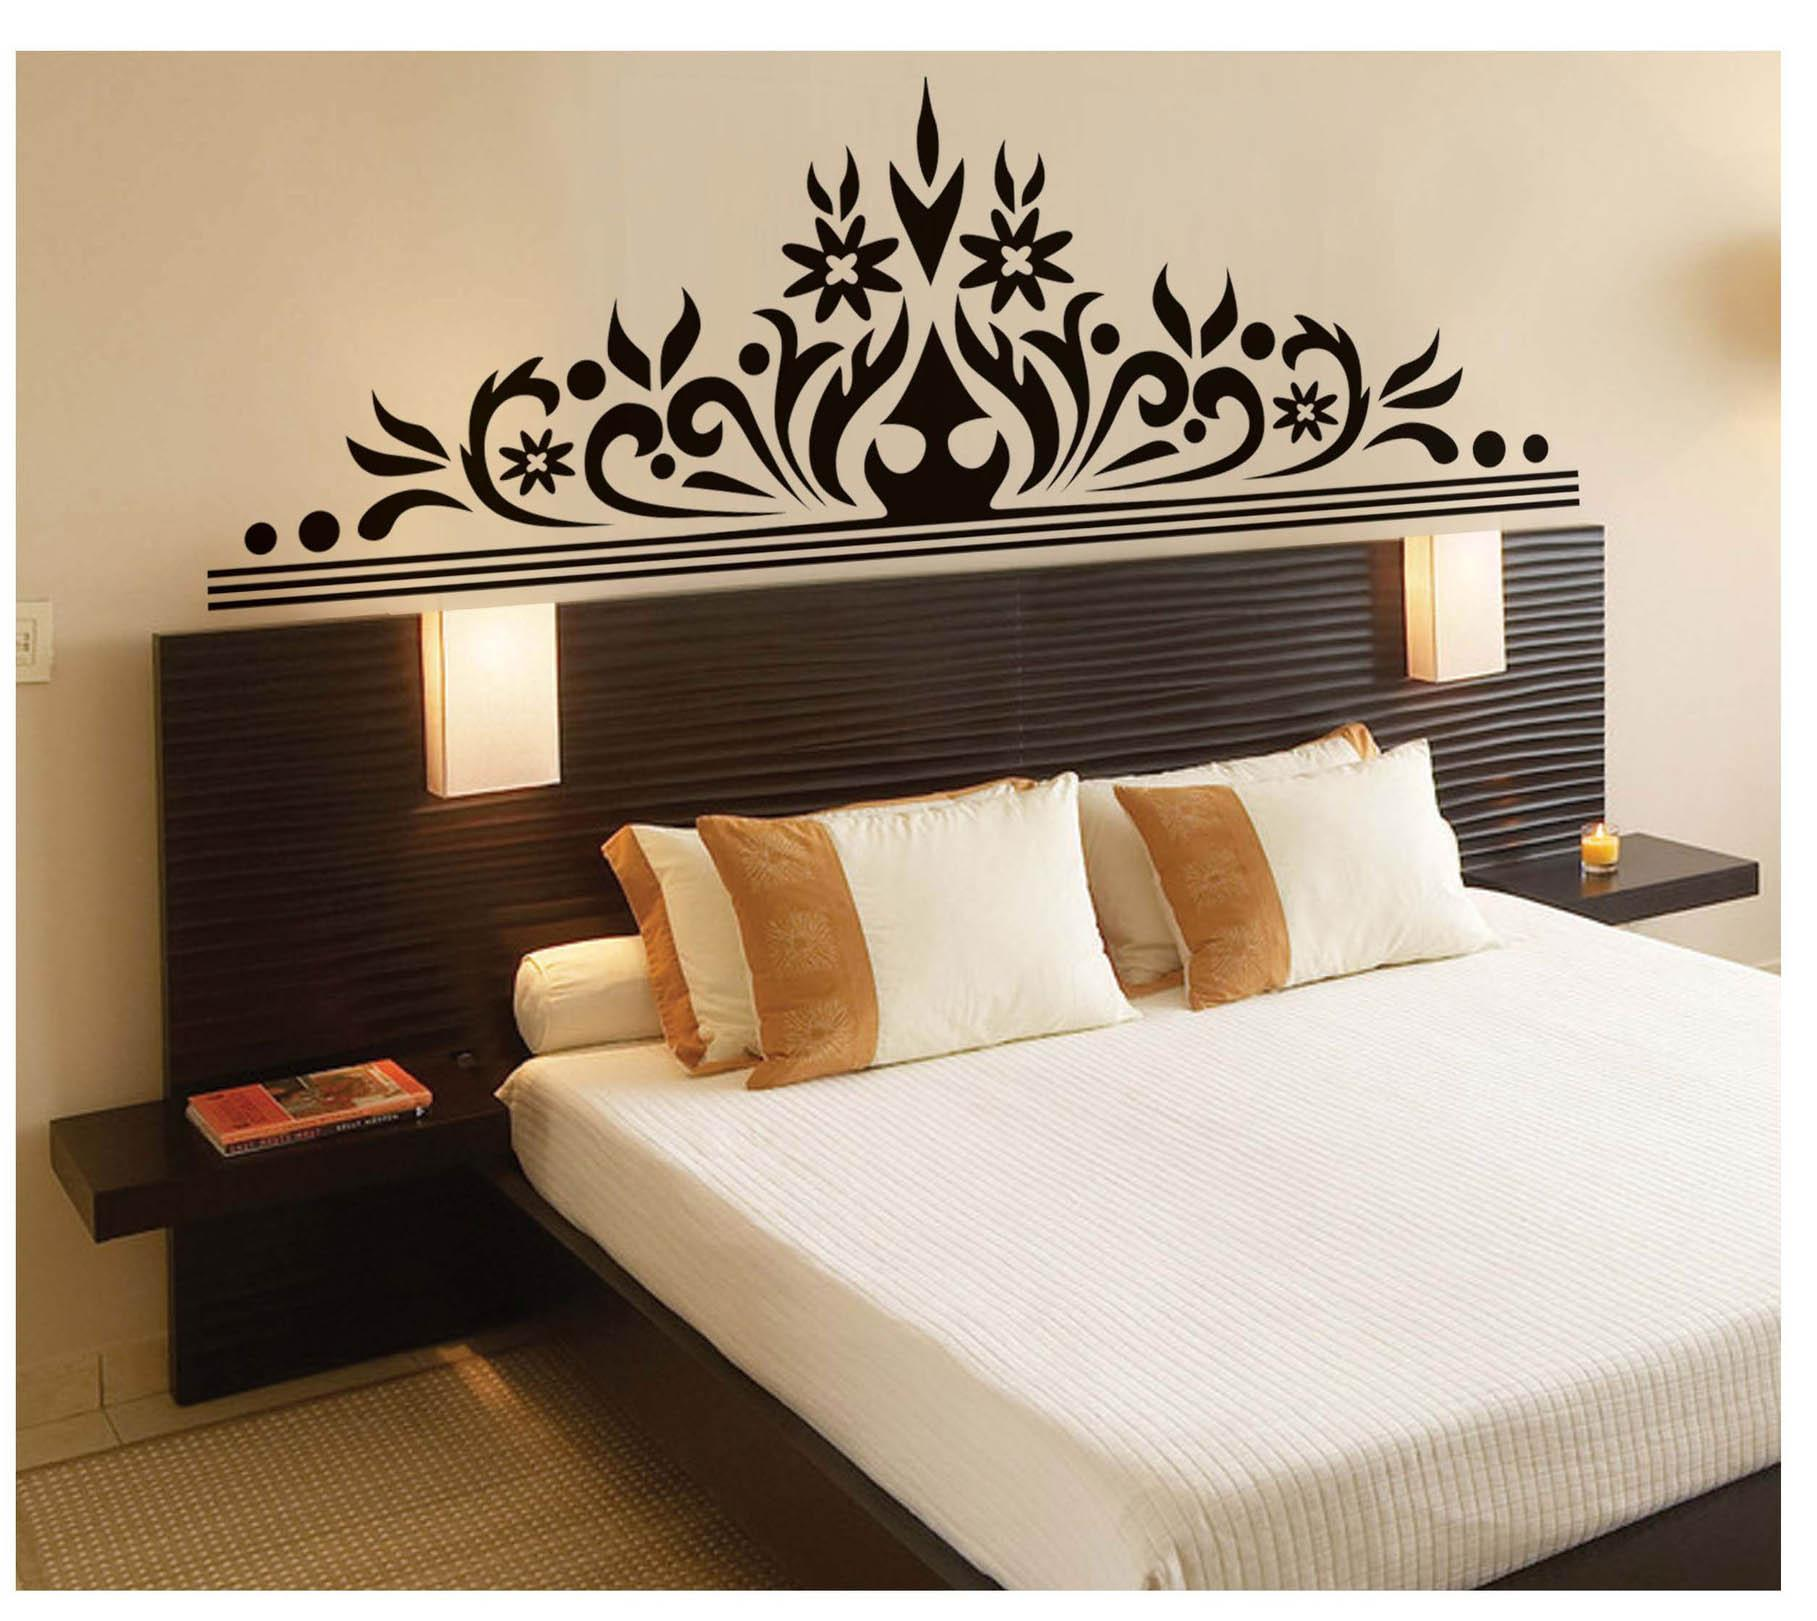 Bedroom Wall Art Decal Sticker Headboard Wall Decoration